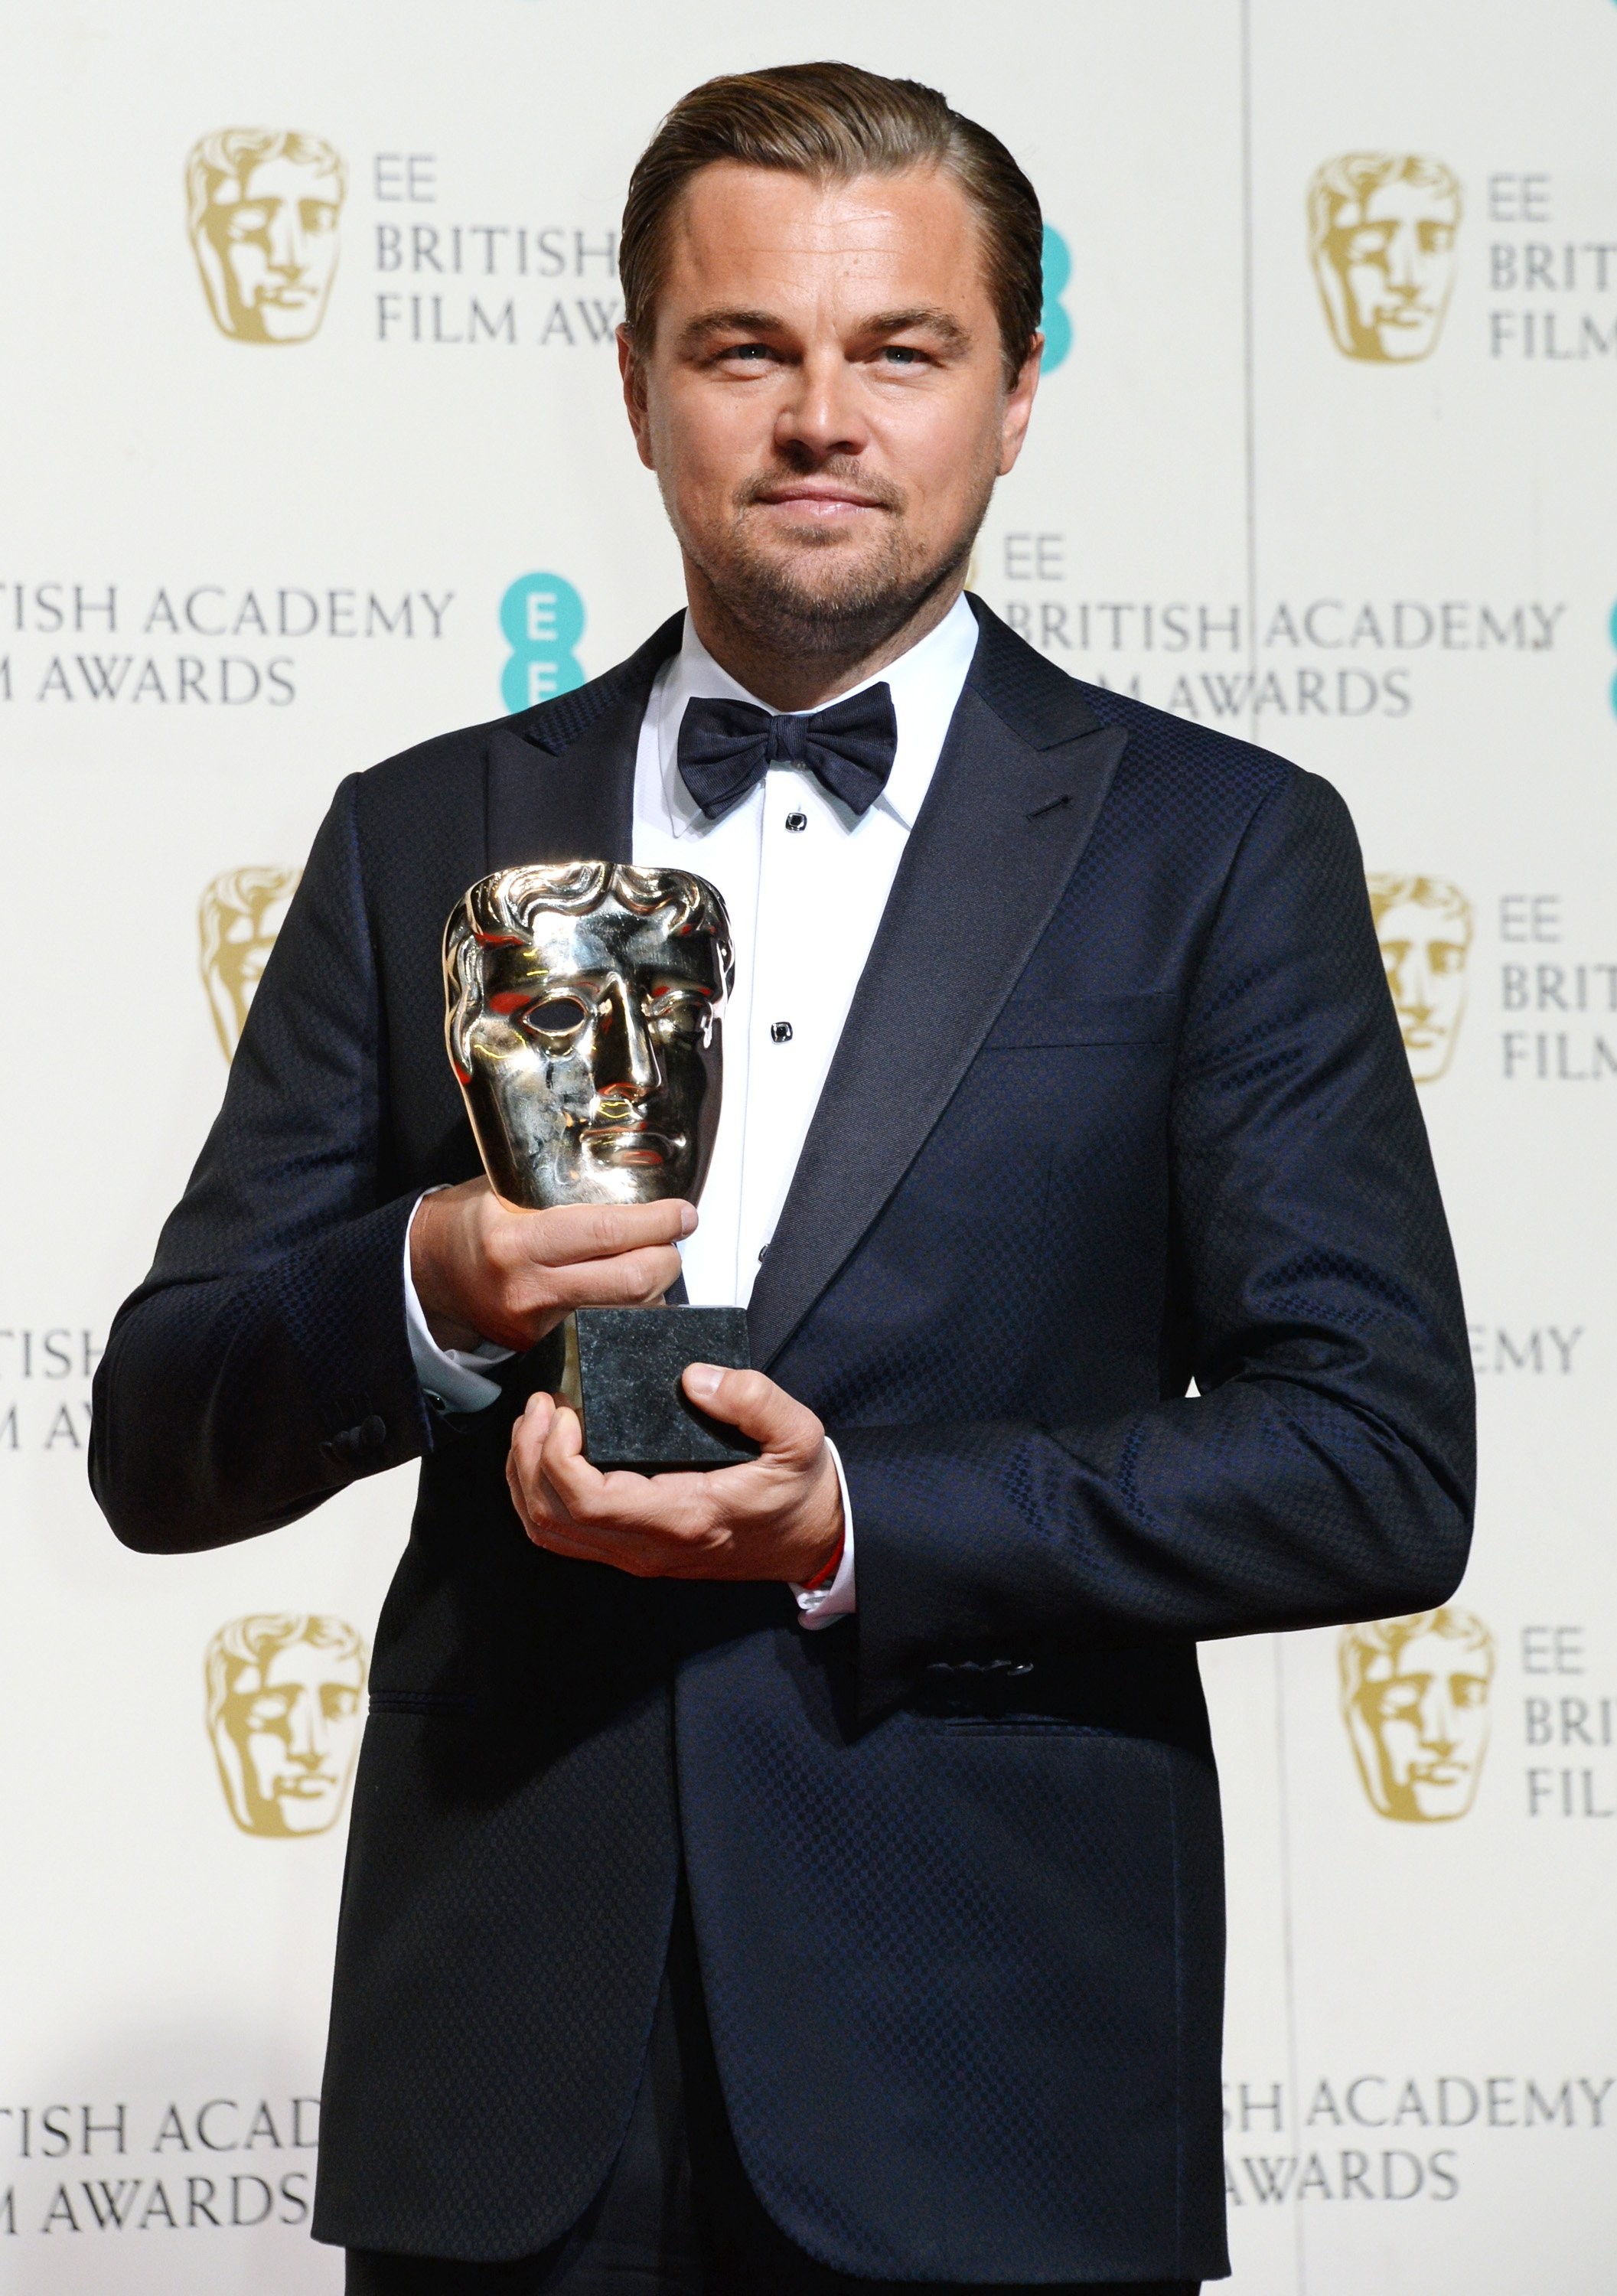 Image Source: Getty Images| Leo at The British Academy Awards